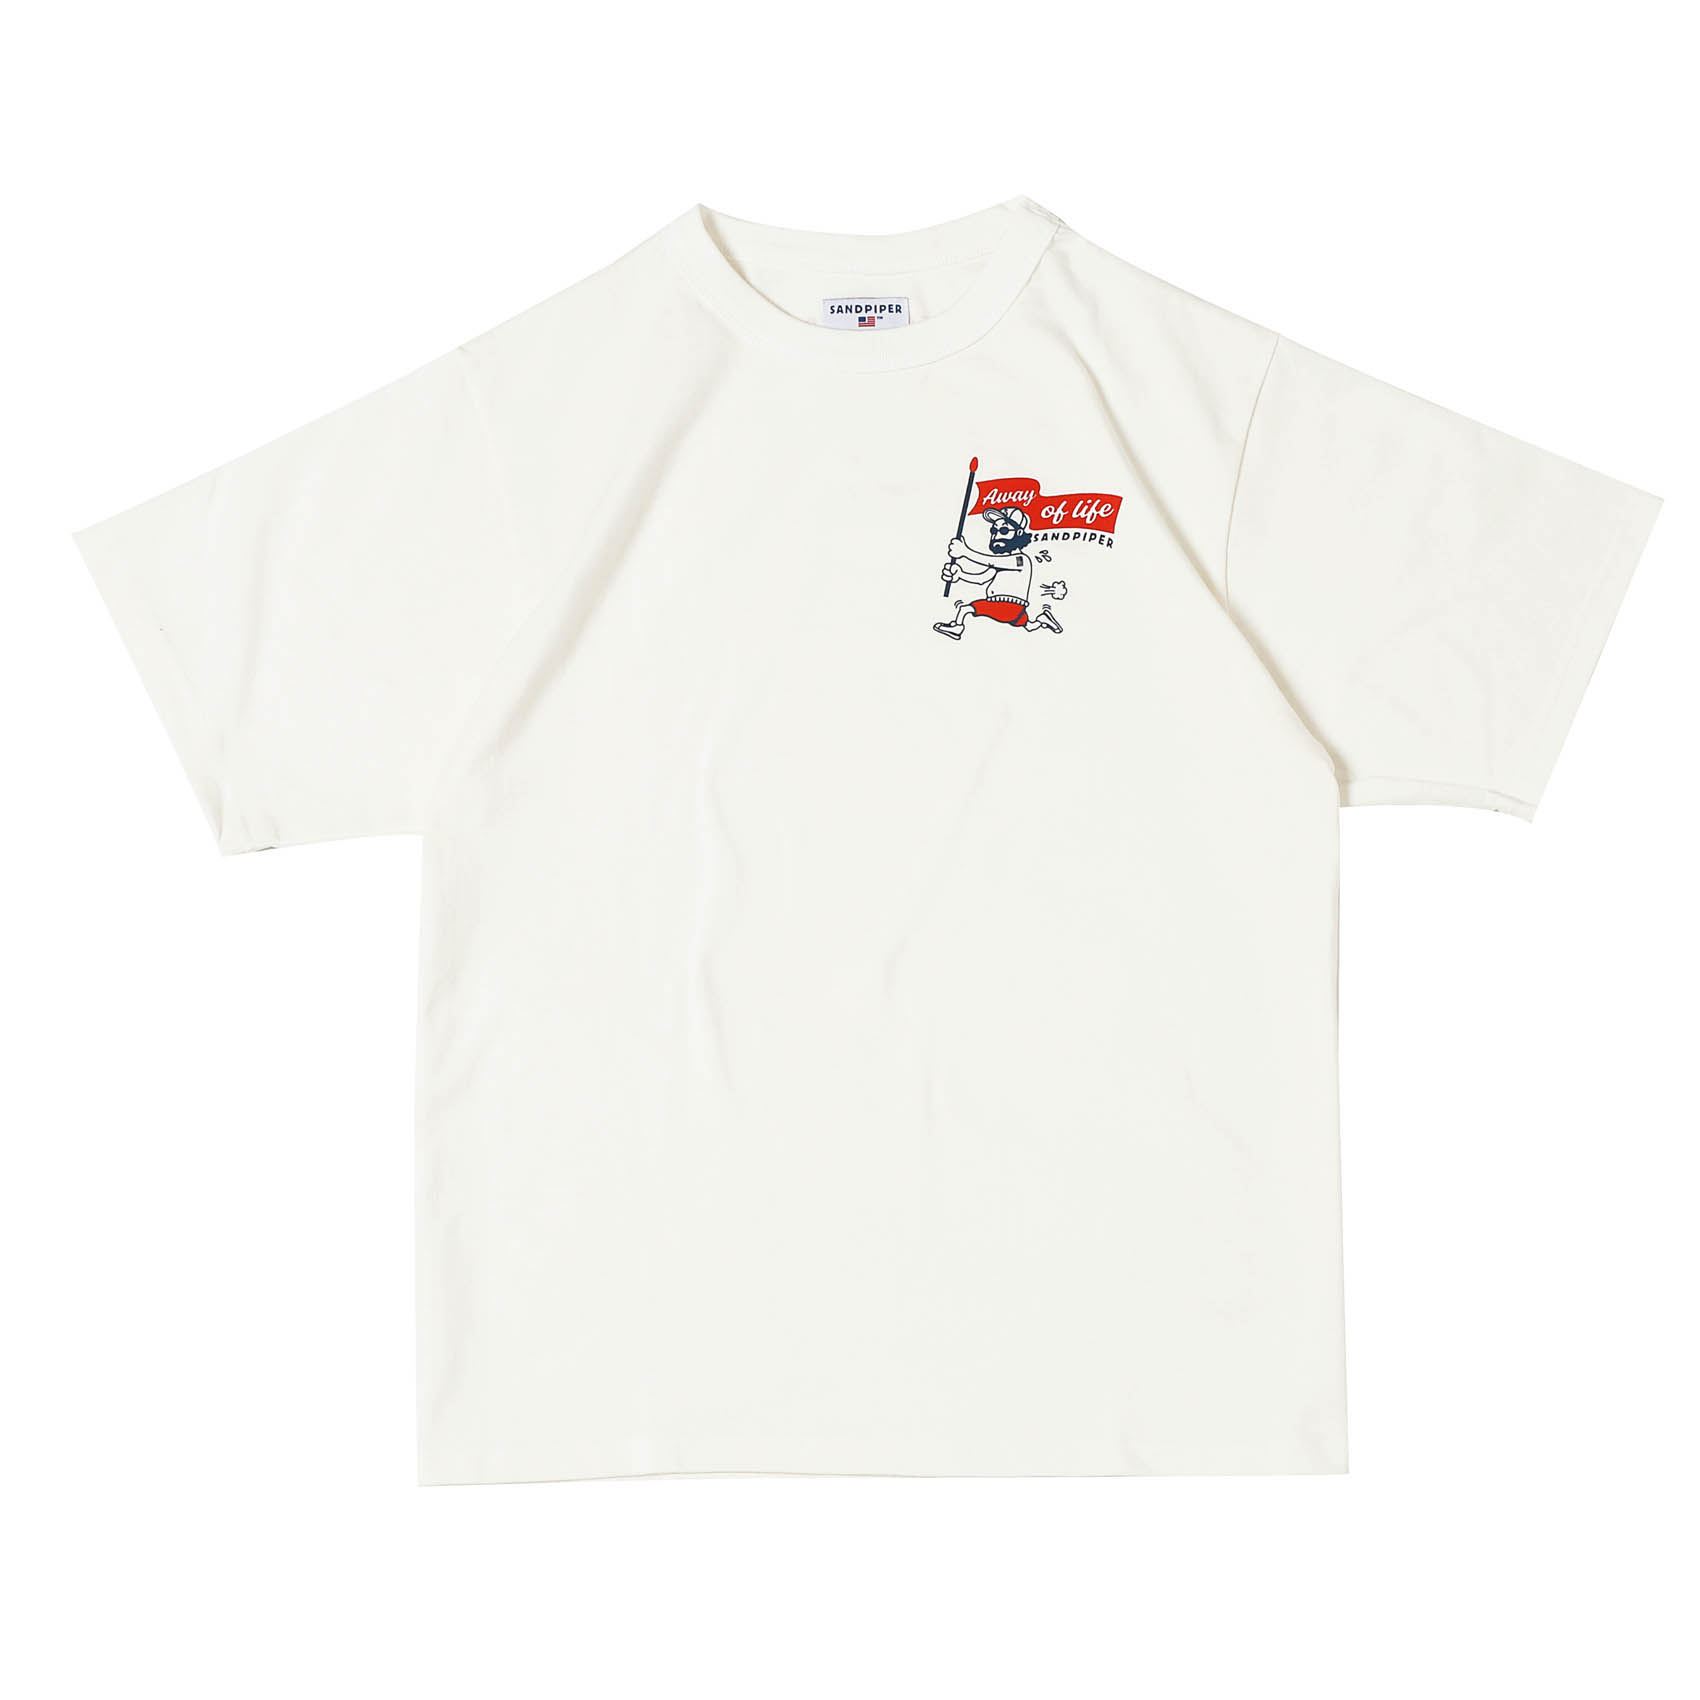 UNCLE RUN TEE - WHITE